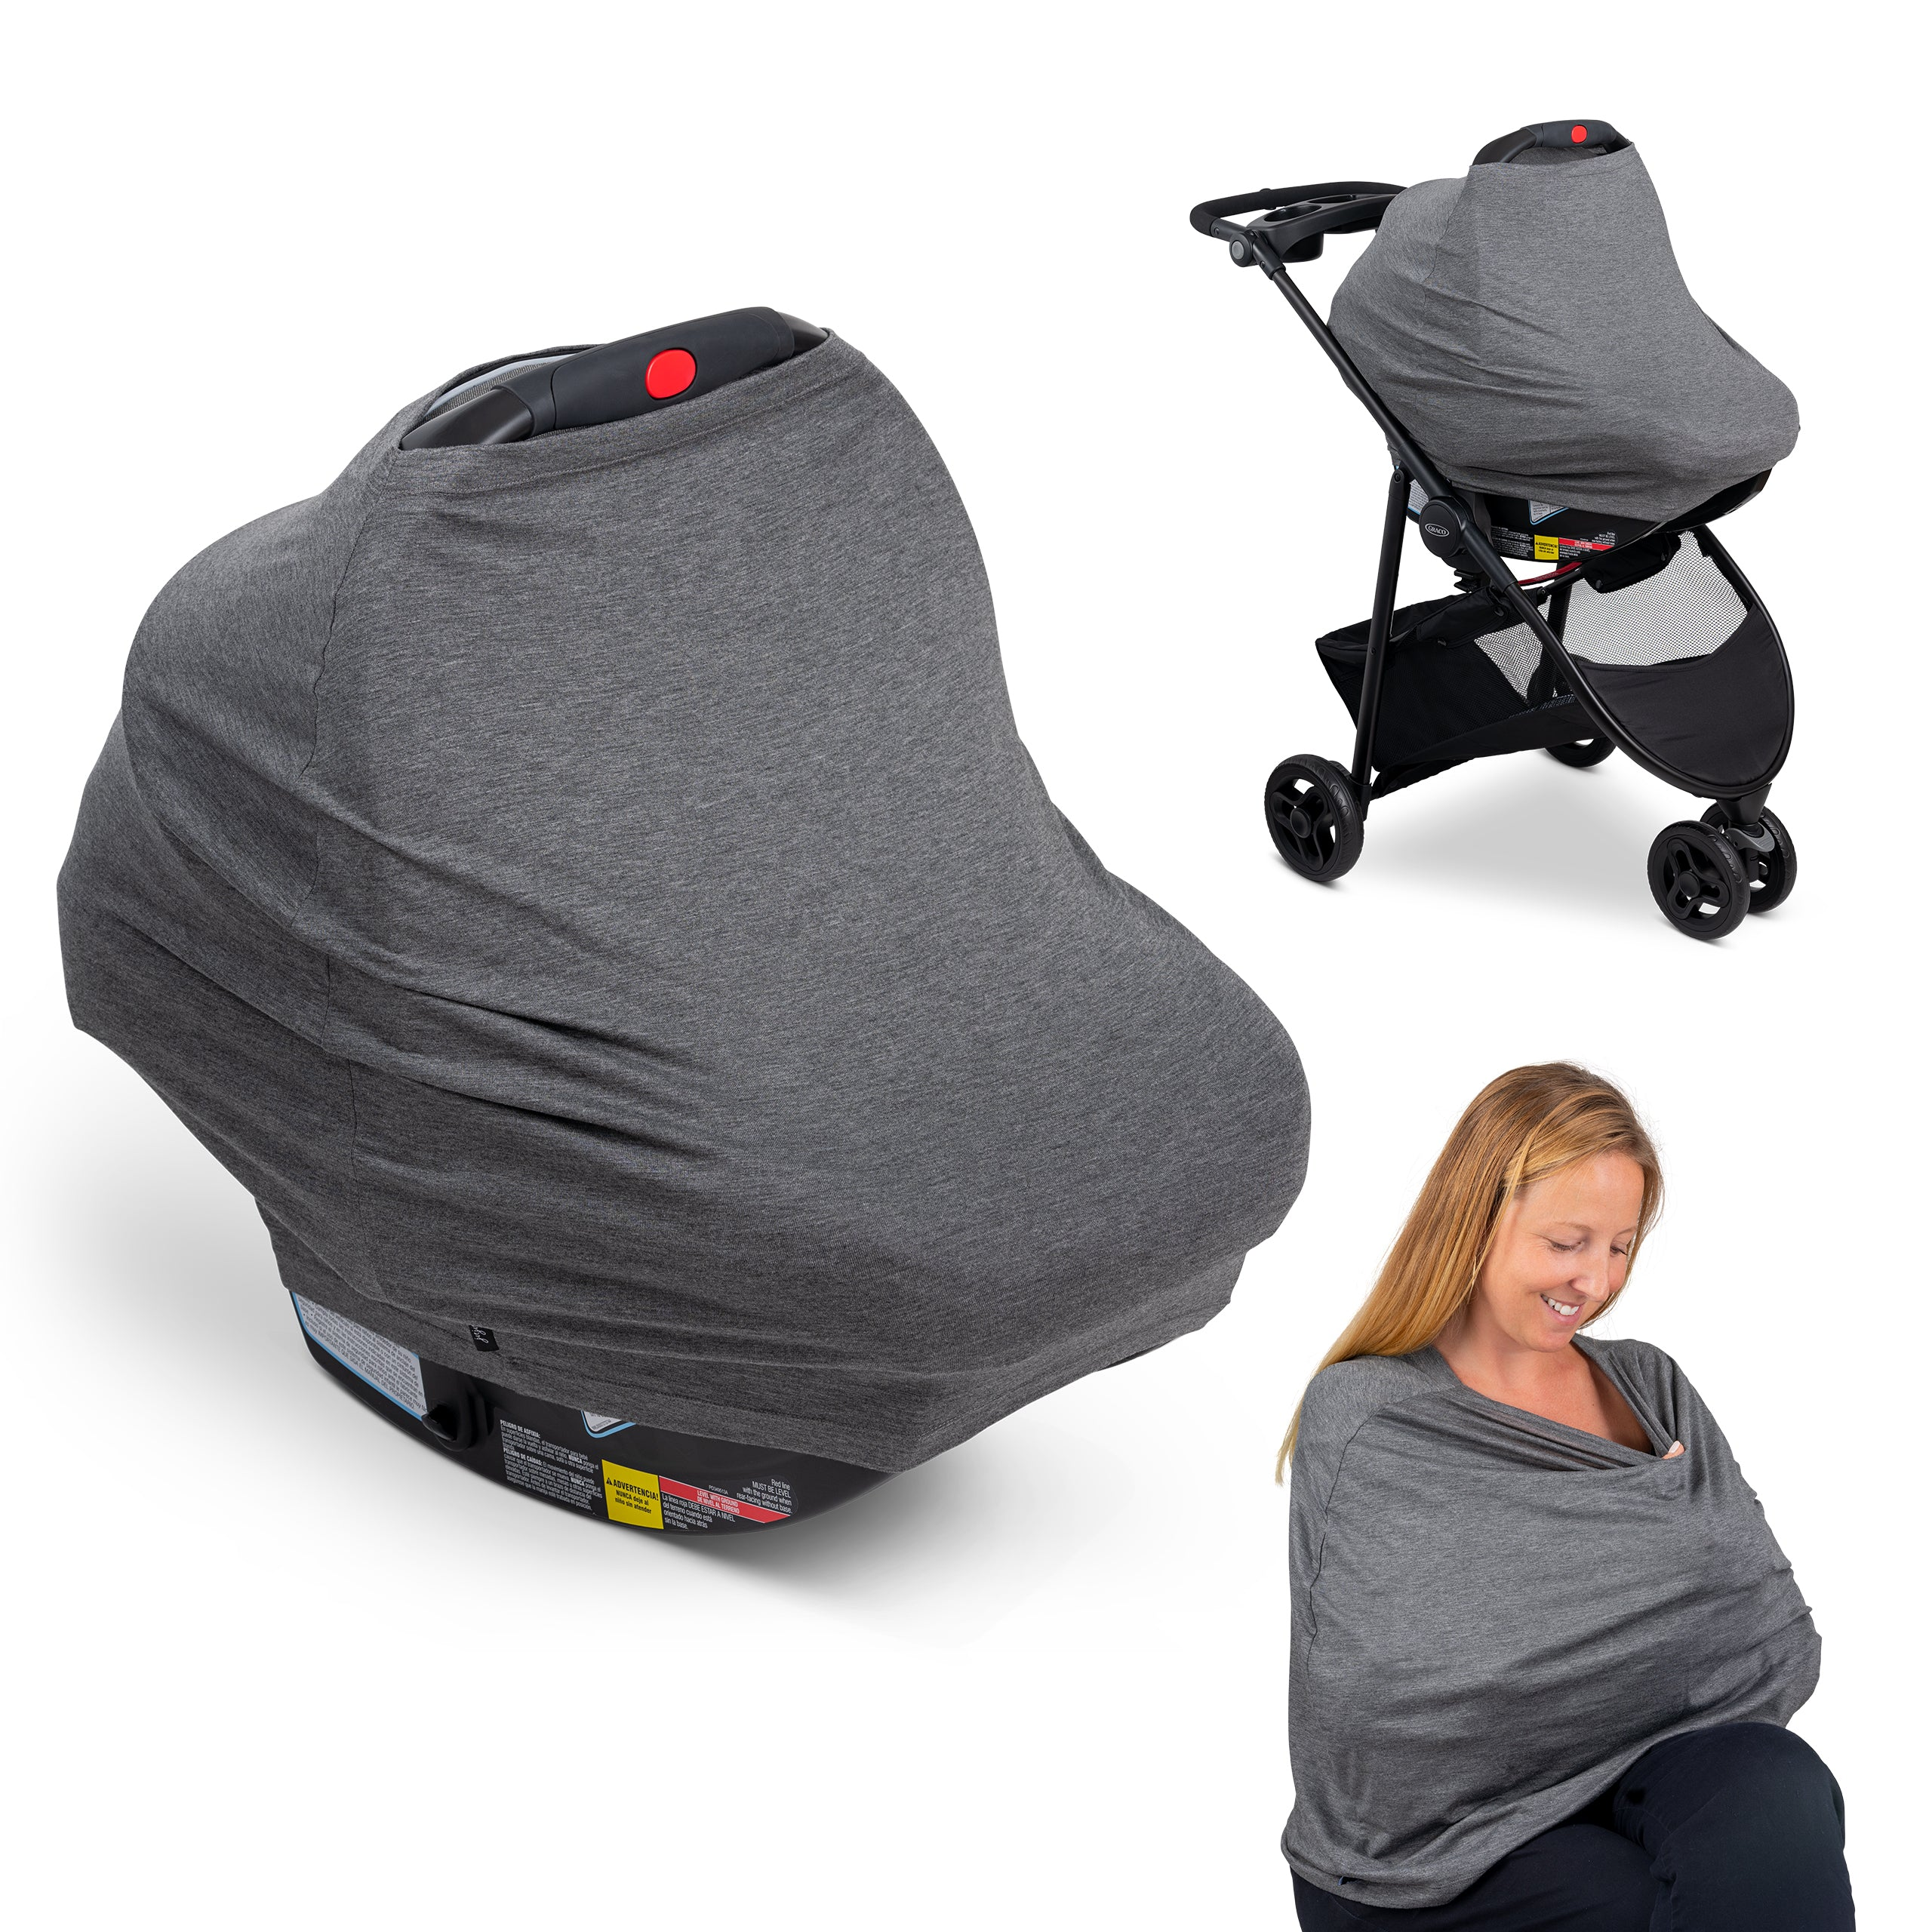 6-in-1 Multi-Use Car Seat Cover